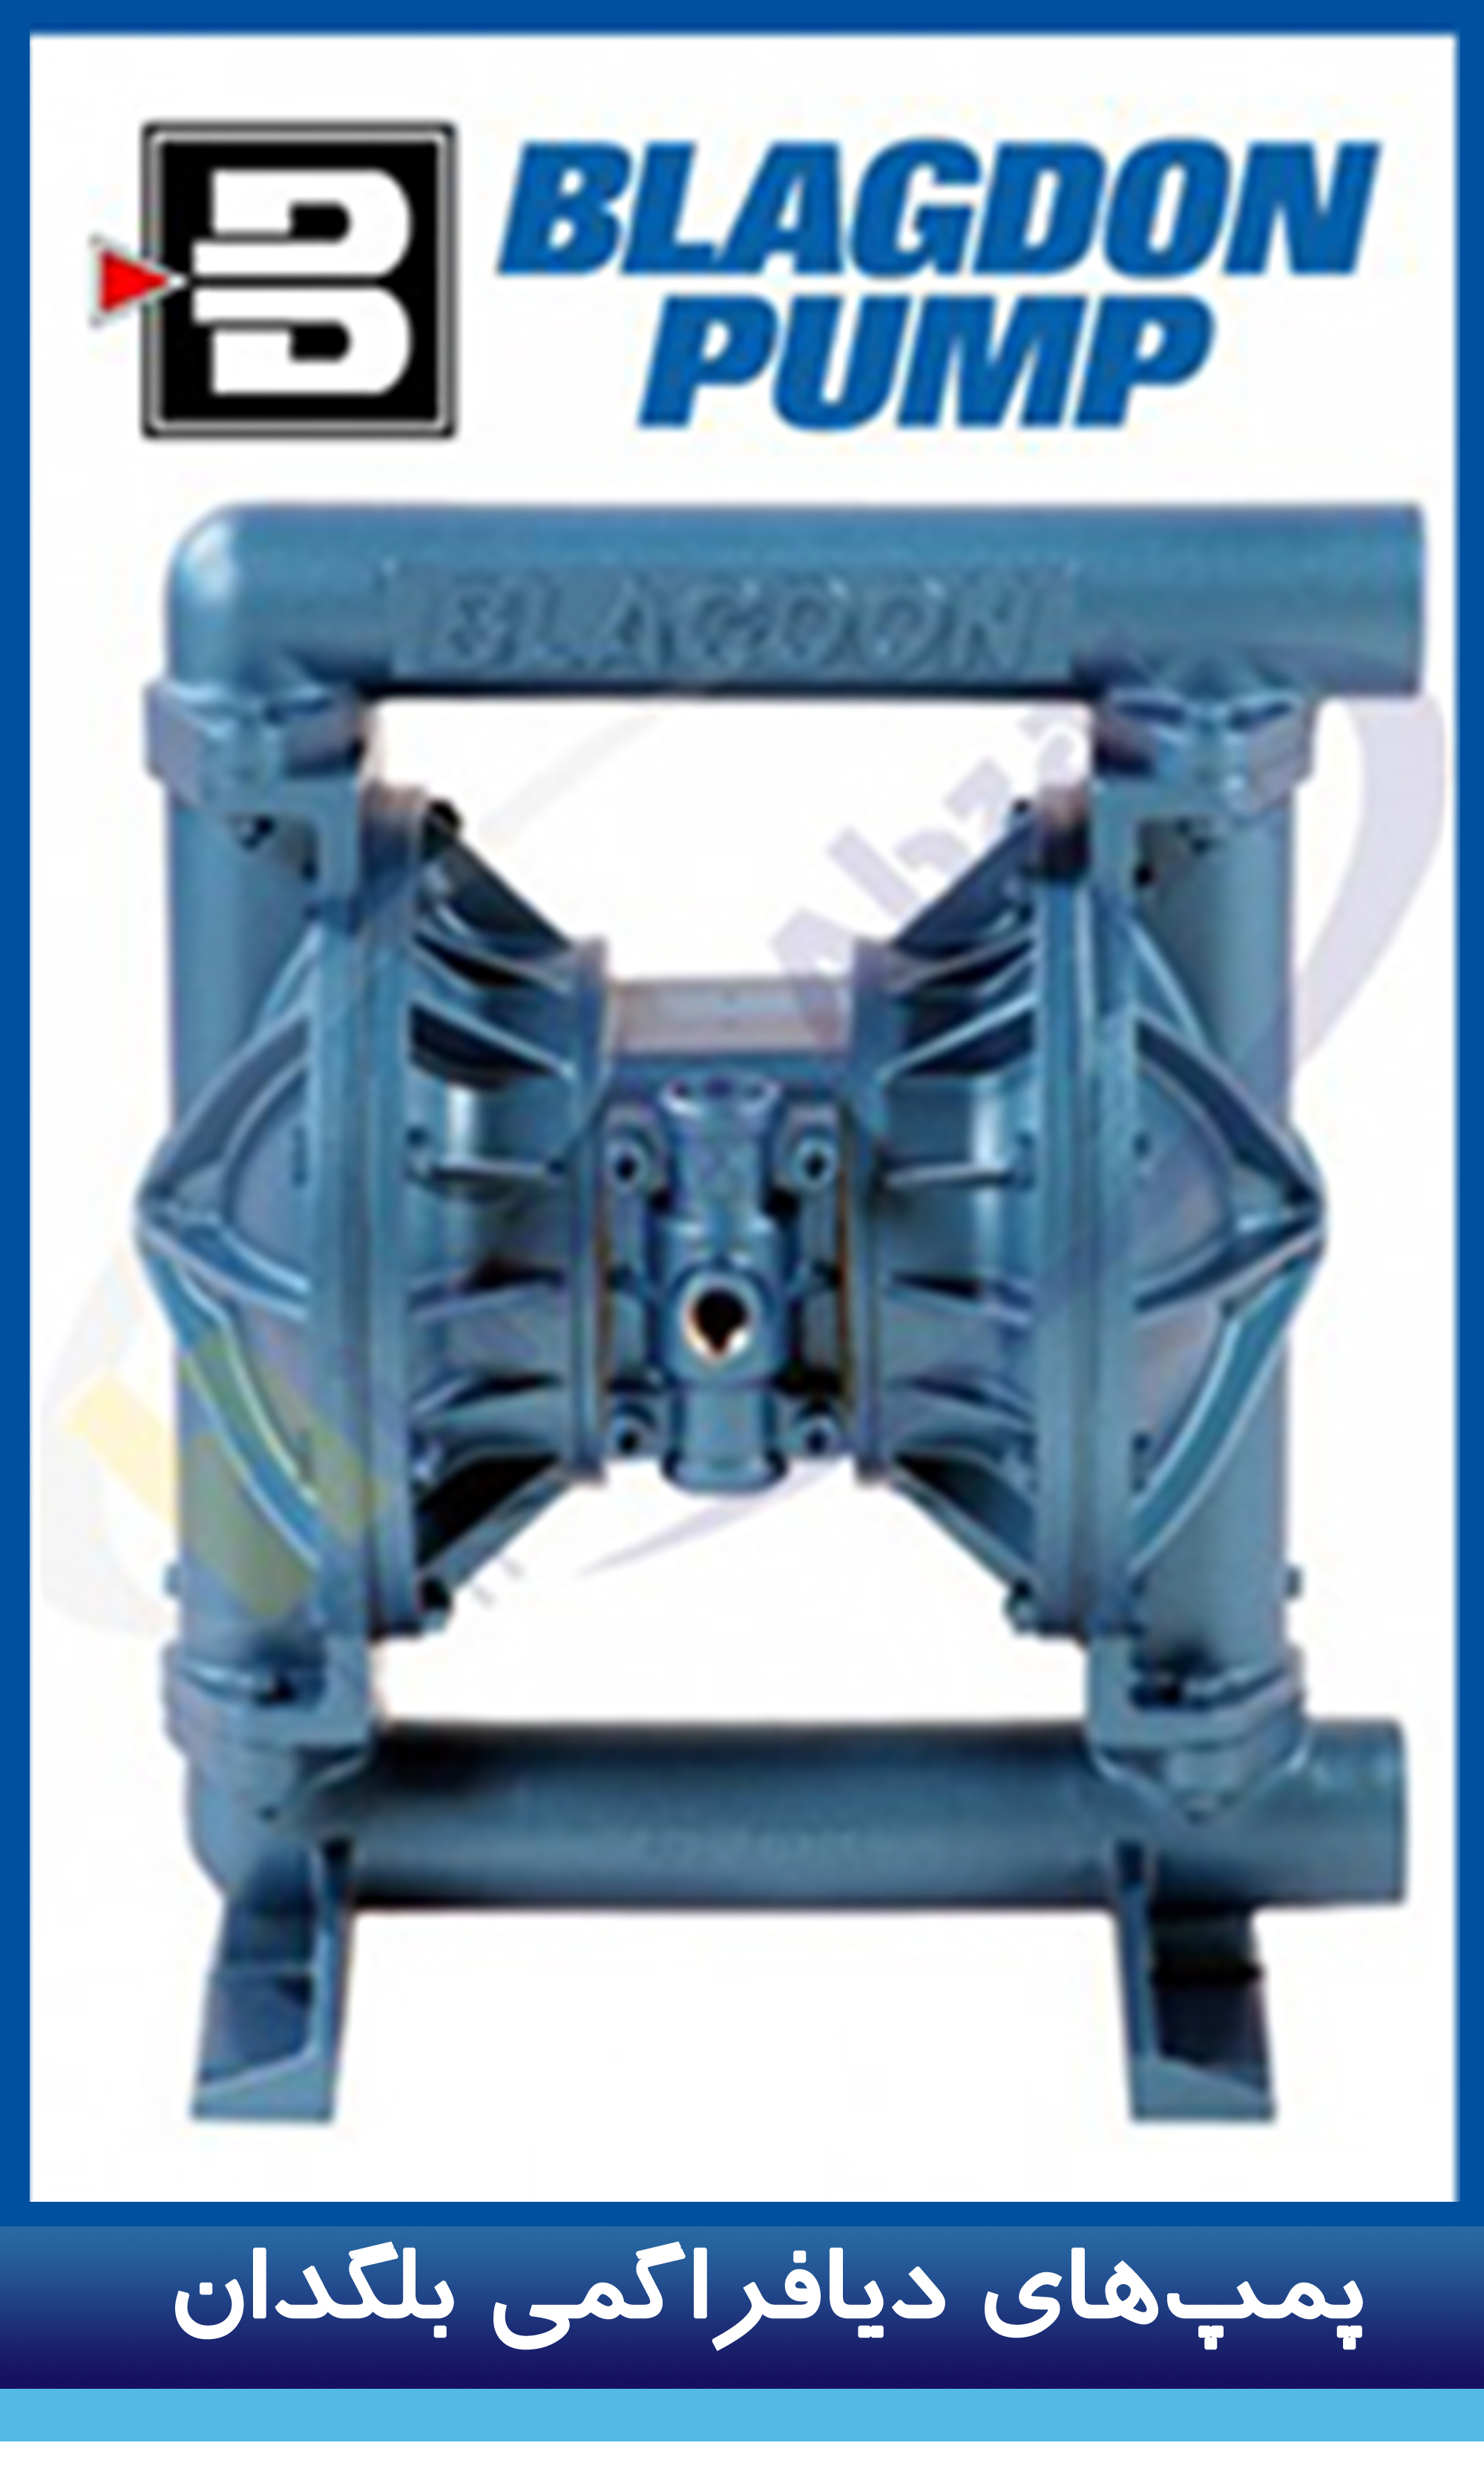 blagdon_diaphragm_pump_400